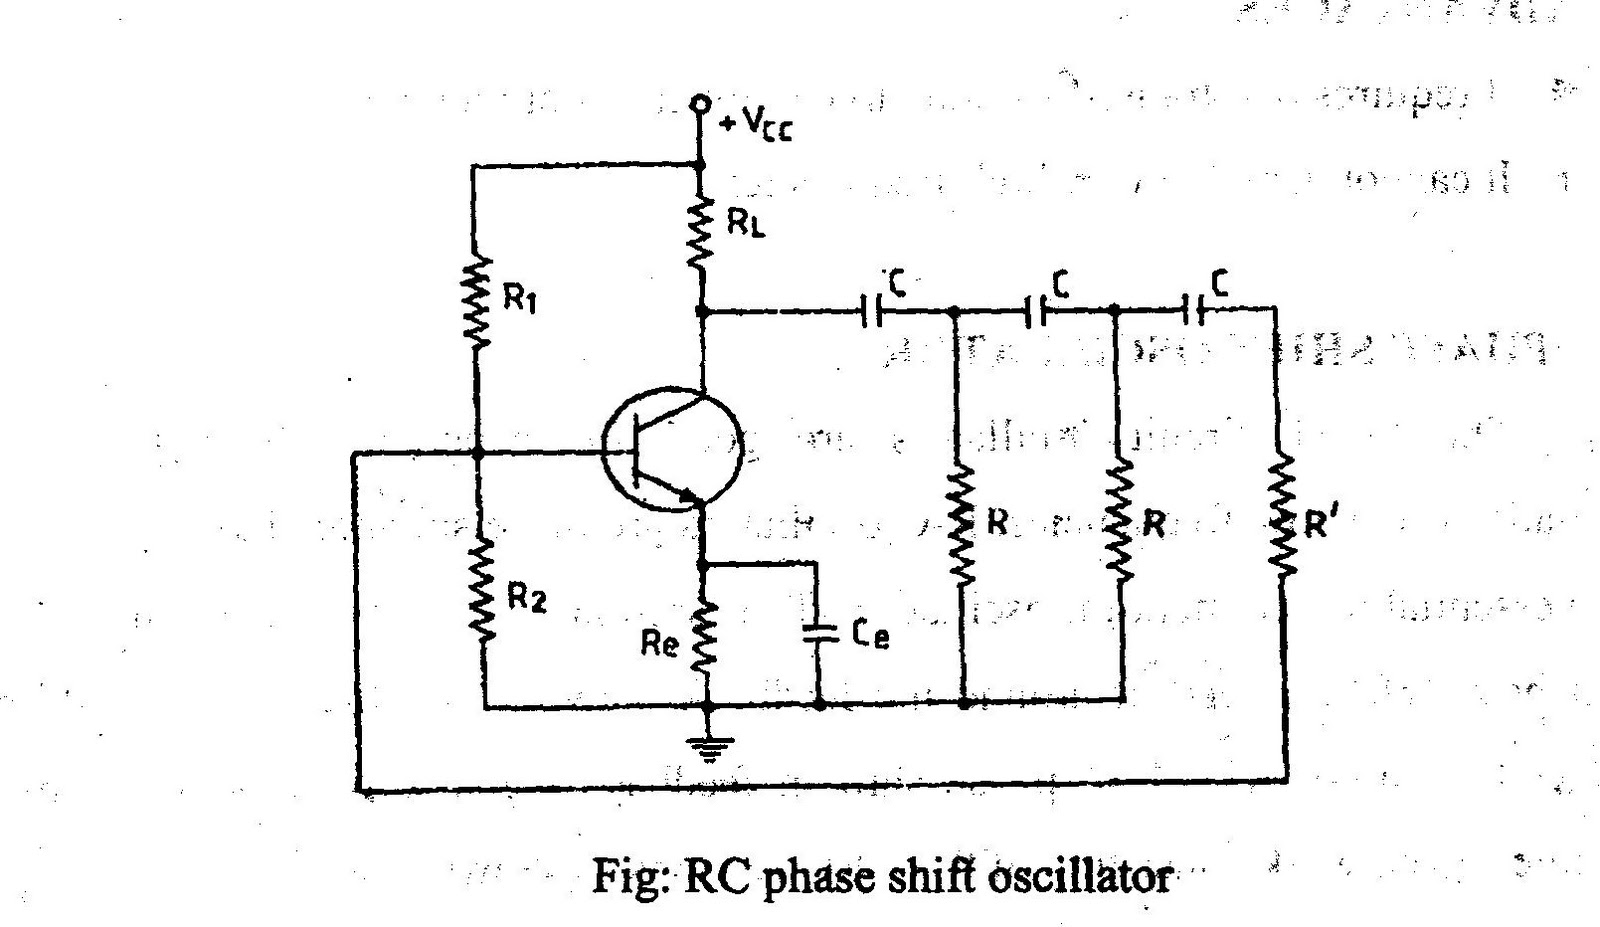 Electrical And Electronics Engineering September 2011 Reverse Bias Oscillator Circuit Phase Shift